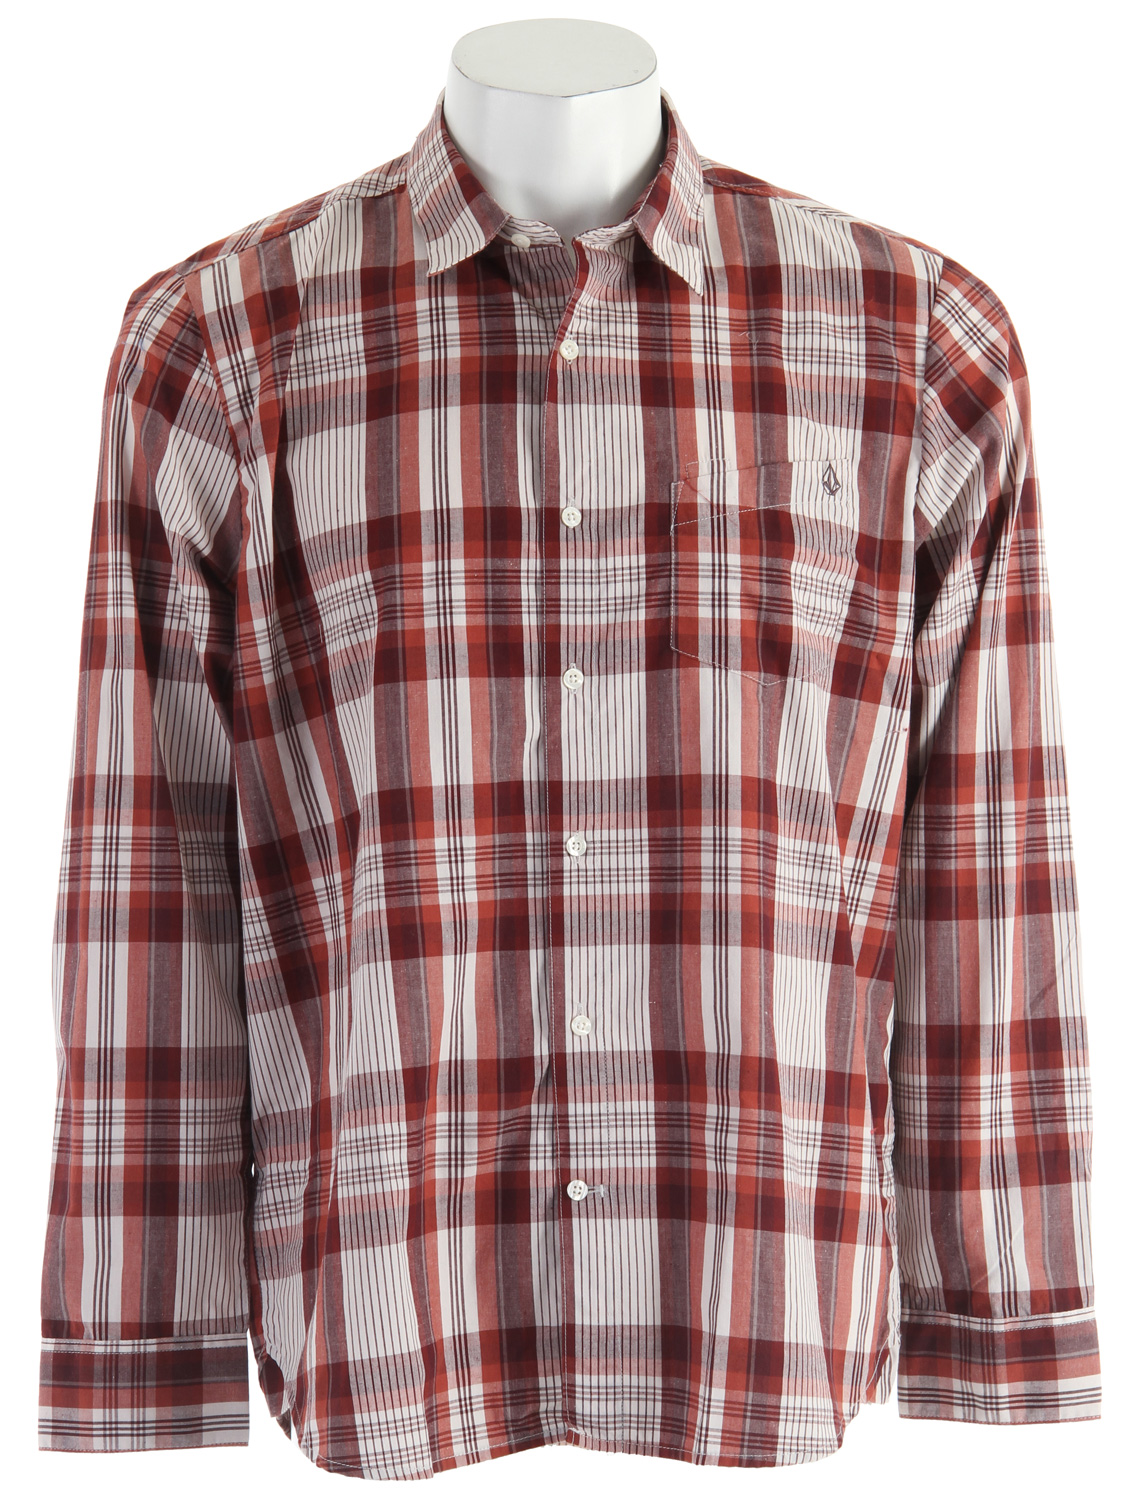 Surf Key Features of the Volcom X-Factor Plaid L/S Shirt: Classic fit yarn dye shirt Pen slot detail at pocket and Stone embroidery Garment wash Corpo Class Collection 60% Cotton/40% Polyester - $30.95